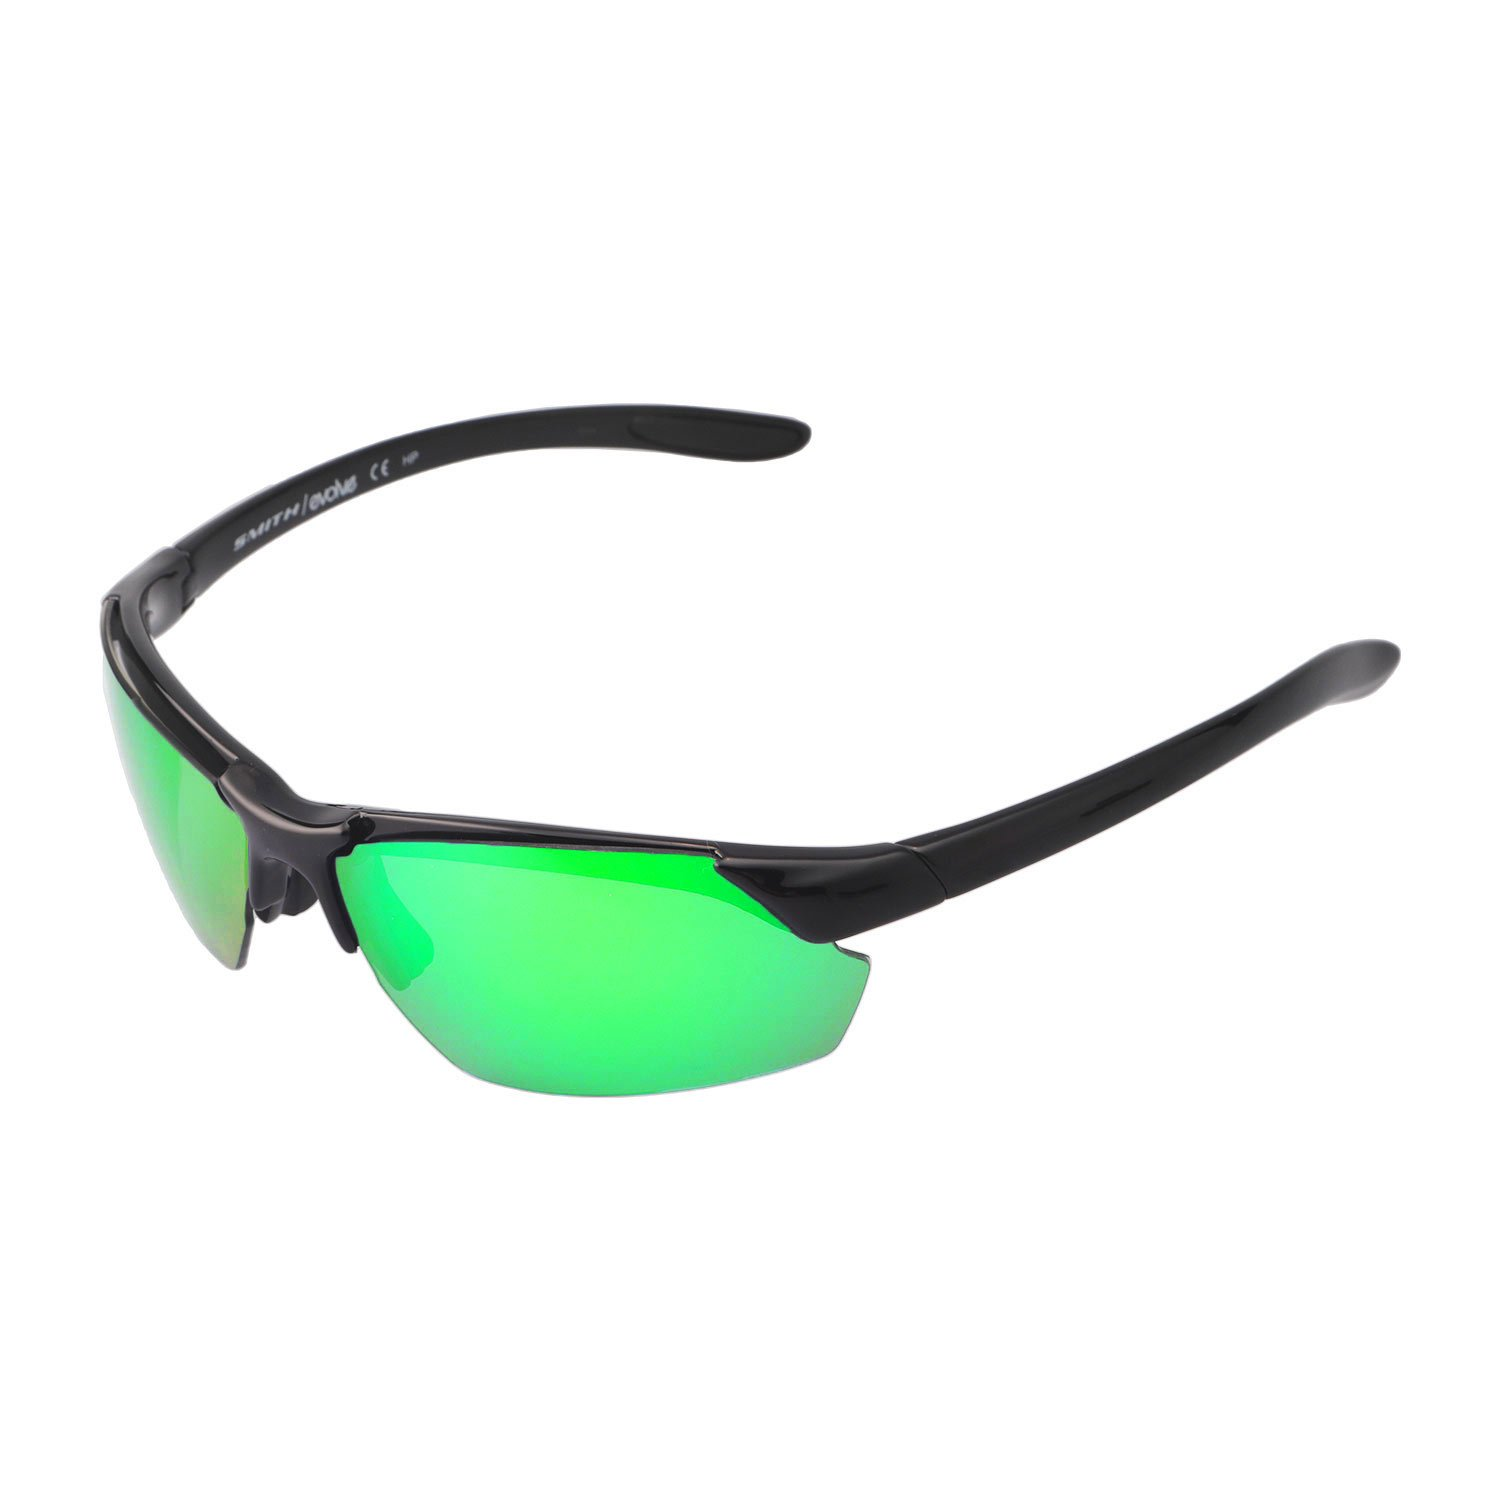 6896adf49c Walleva Replacement Lenses for Smith Parallel Max Sunglasses - Multiple  Options Available (Emerald - Polarized)  Amazon.ca  Sports   Outdoors